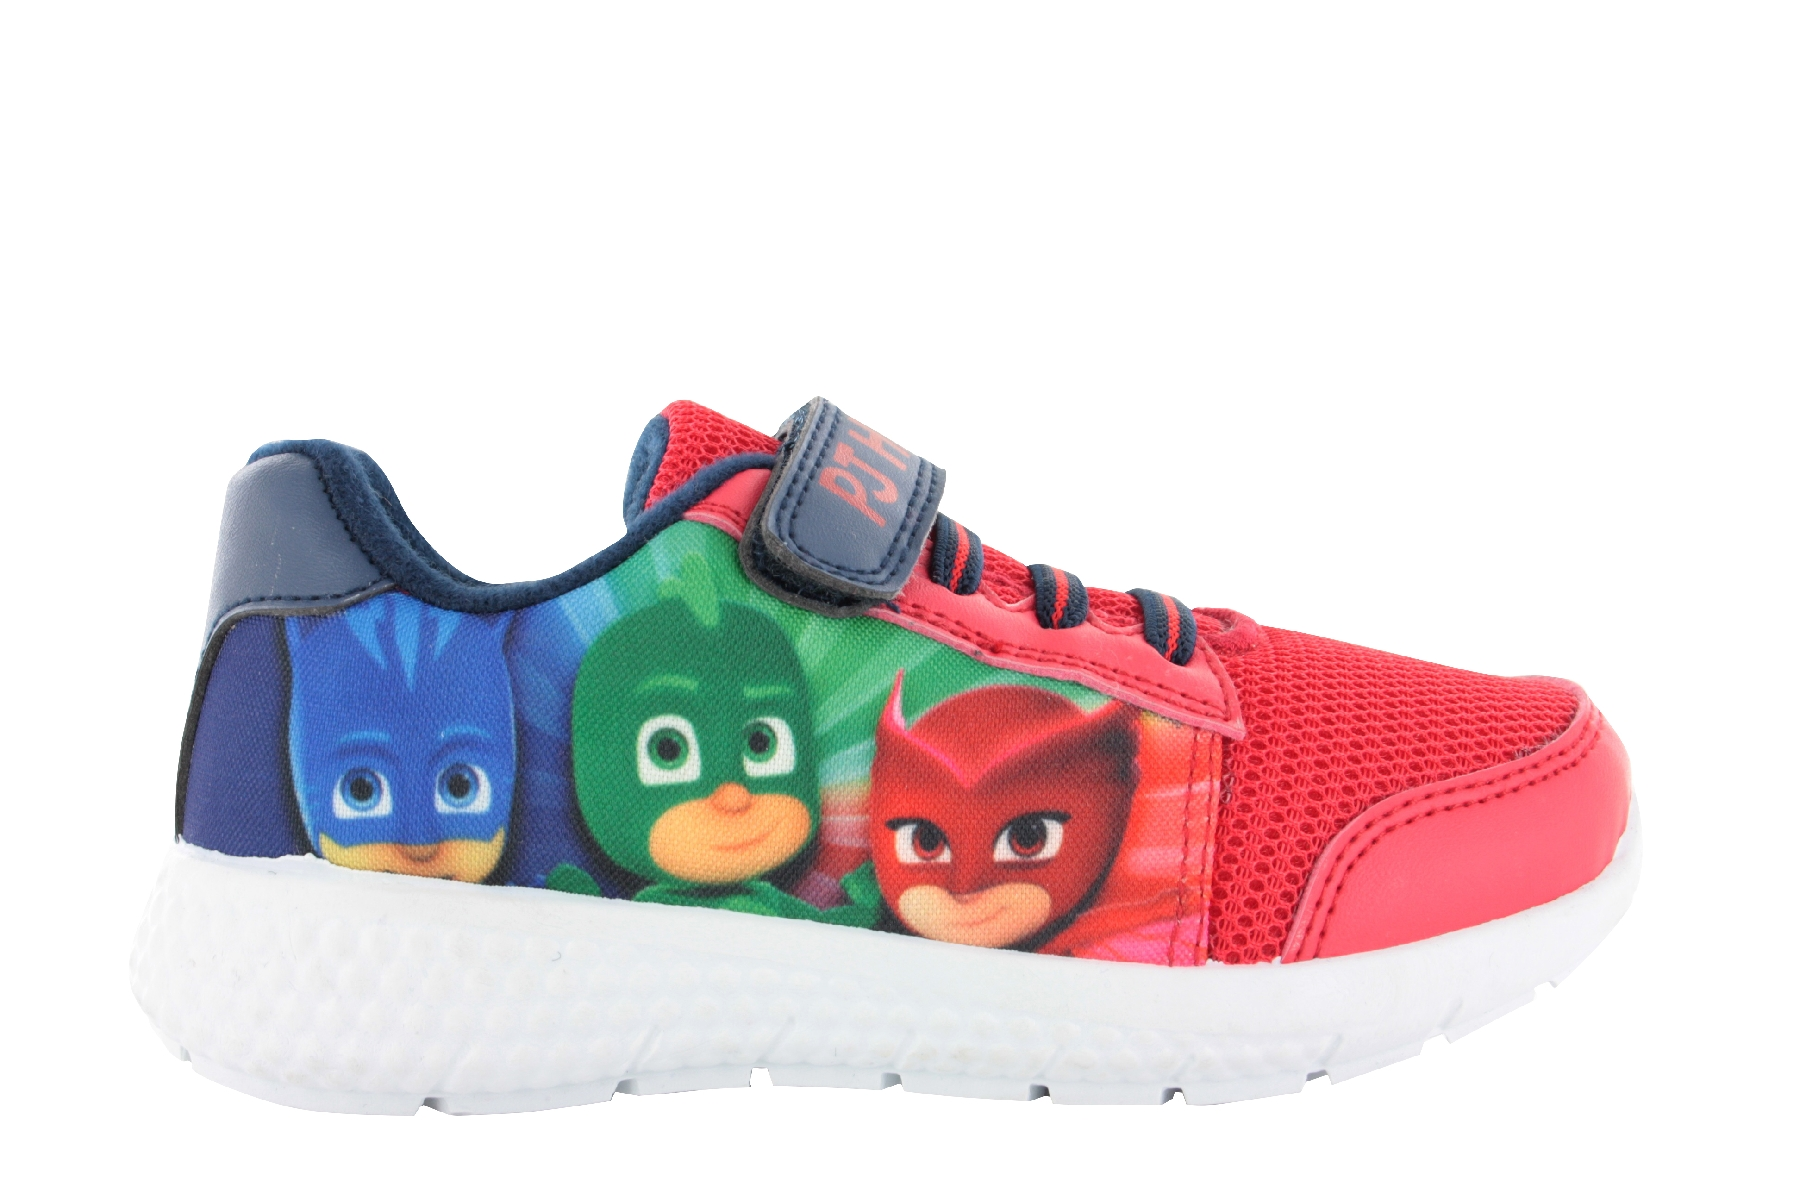 PJ Masks Sneakers Shoes Size 7 8 9 10 11 or 12 Light Up Gecko Cat Boy